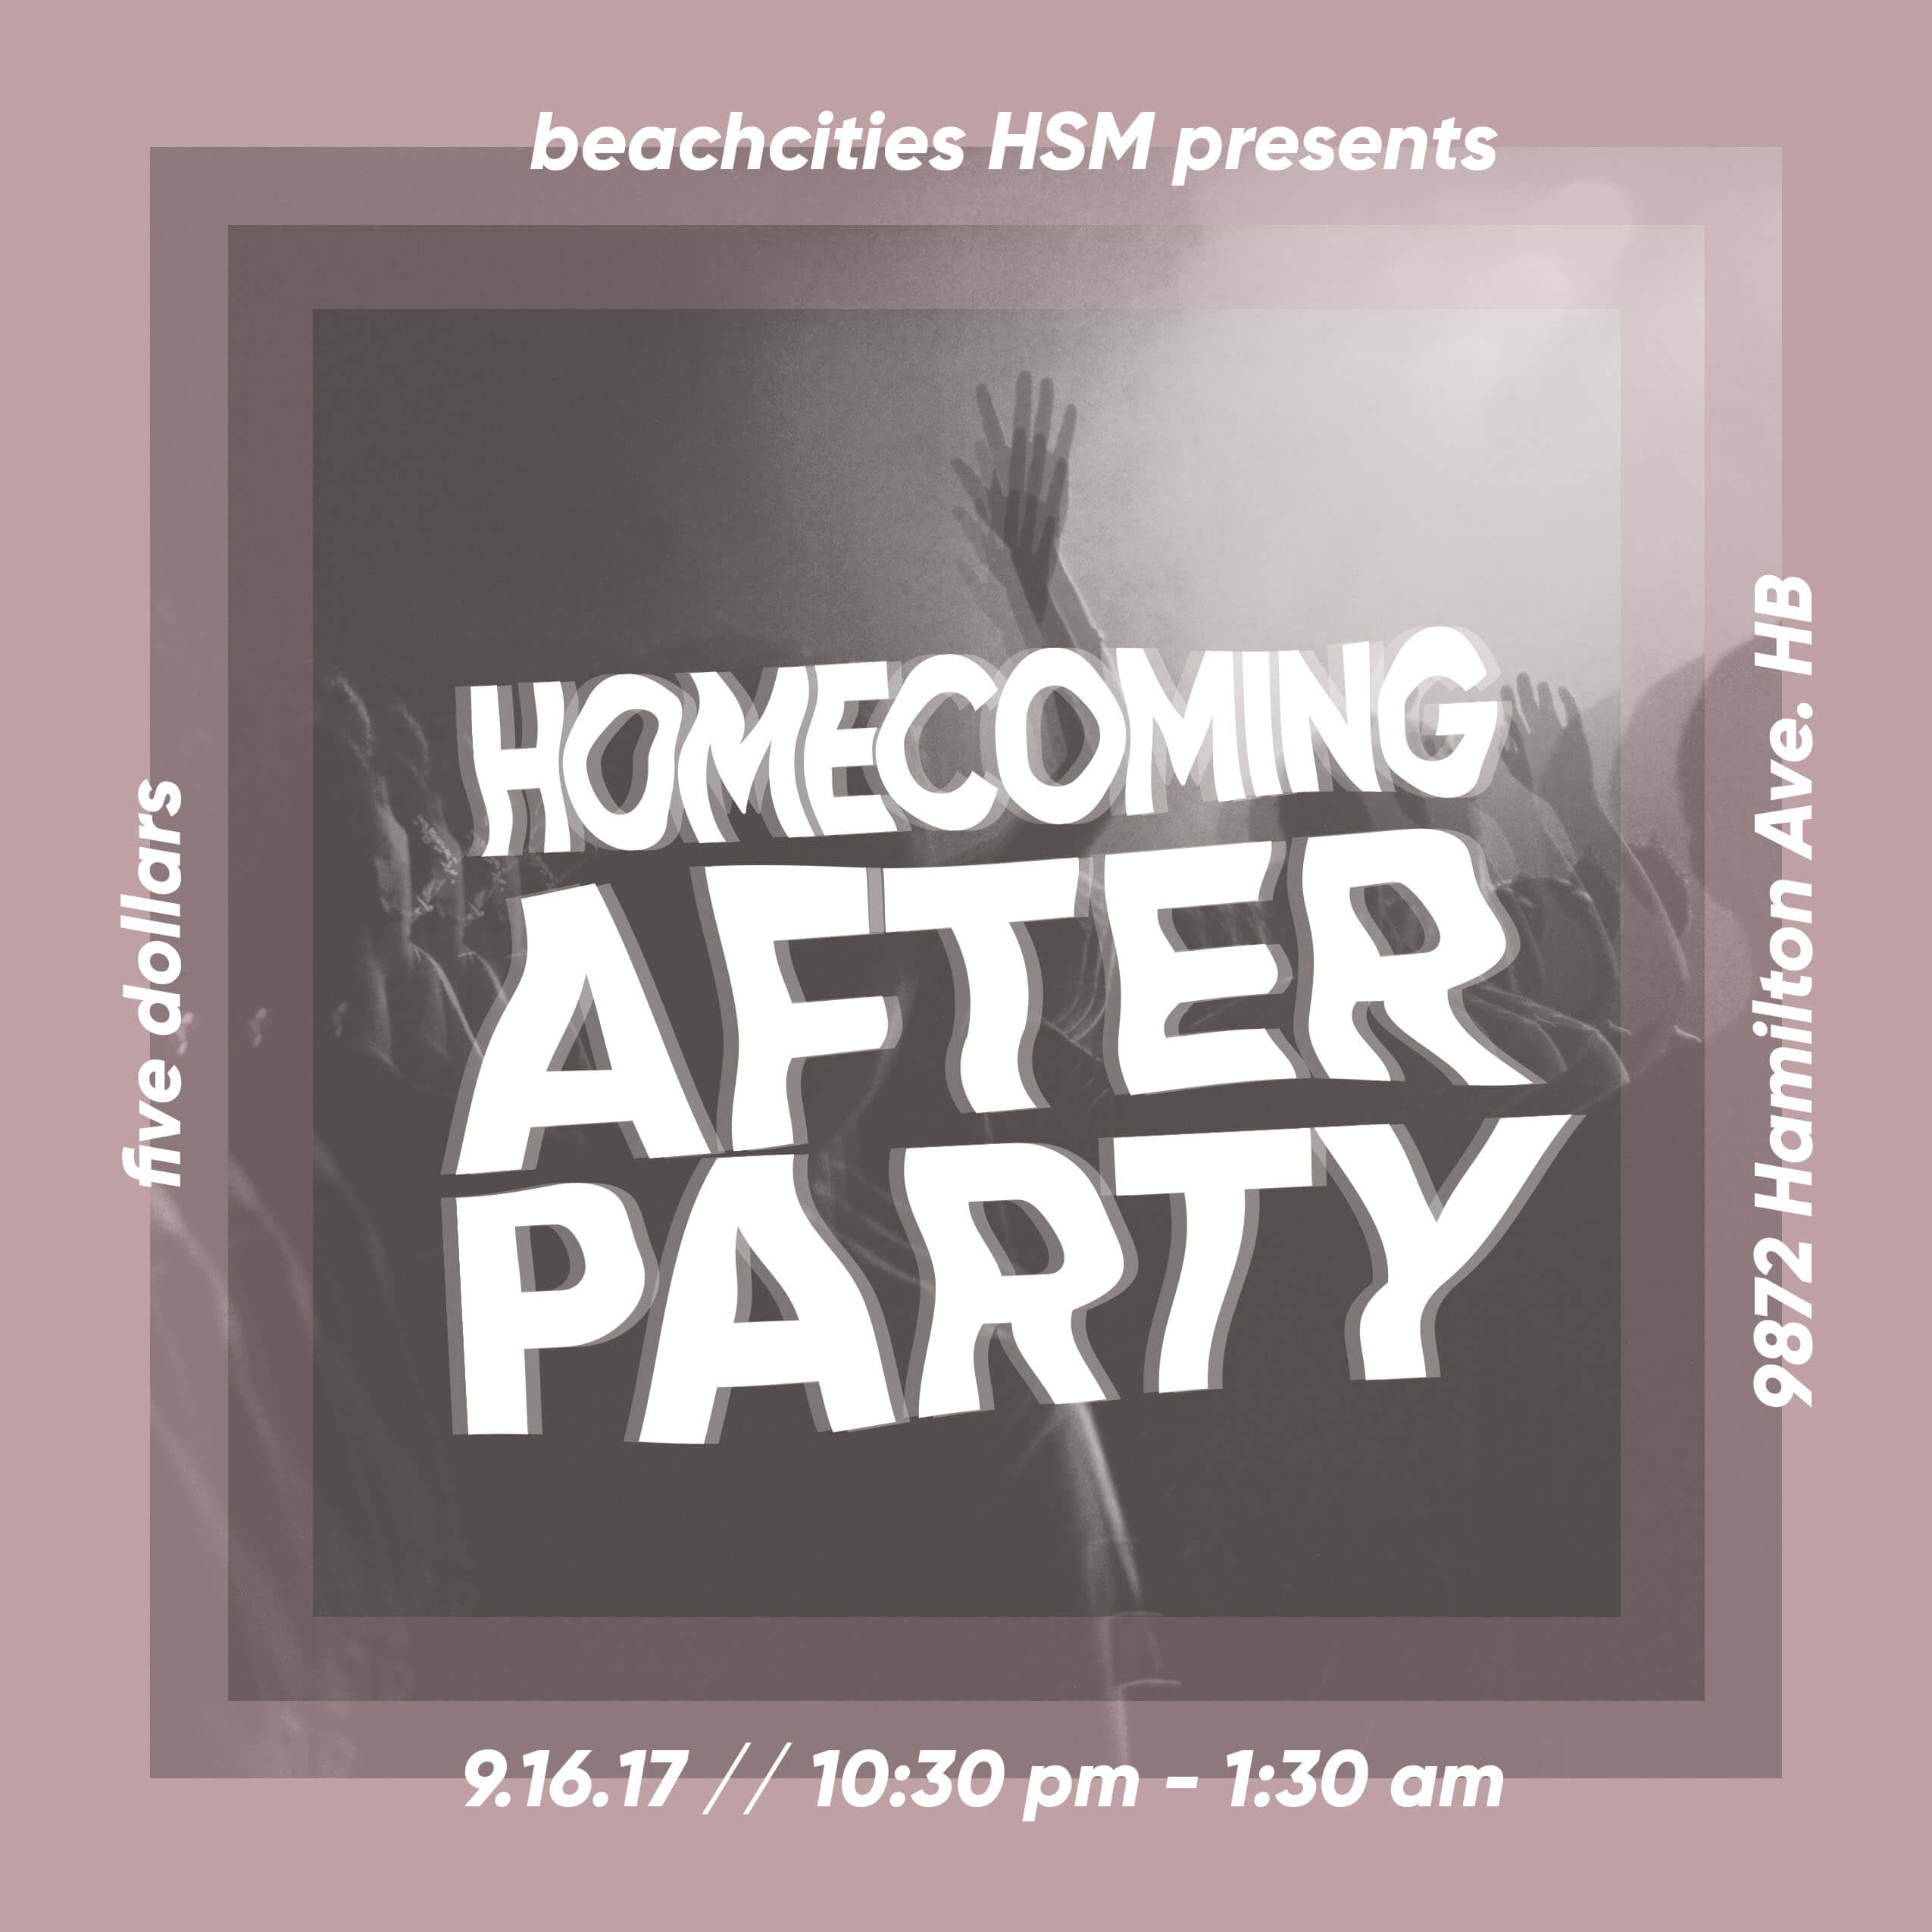 Homecoming_After_Party_3